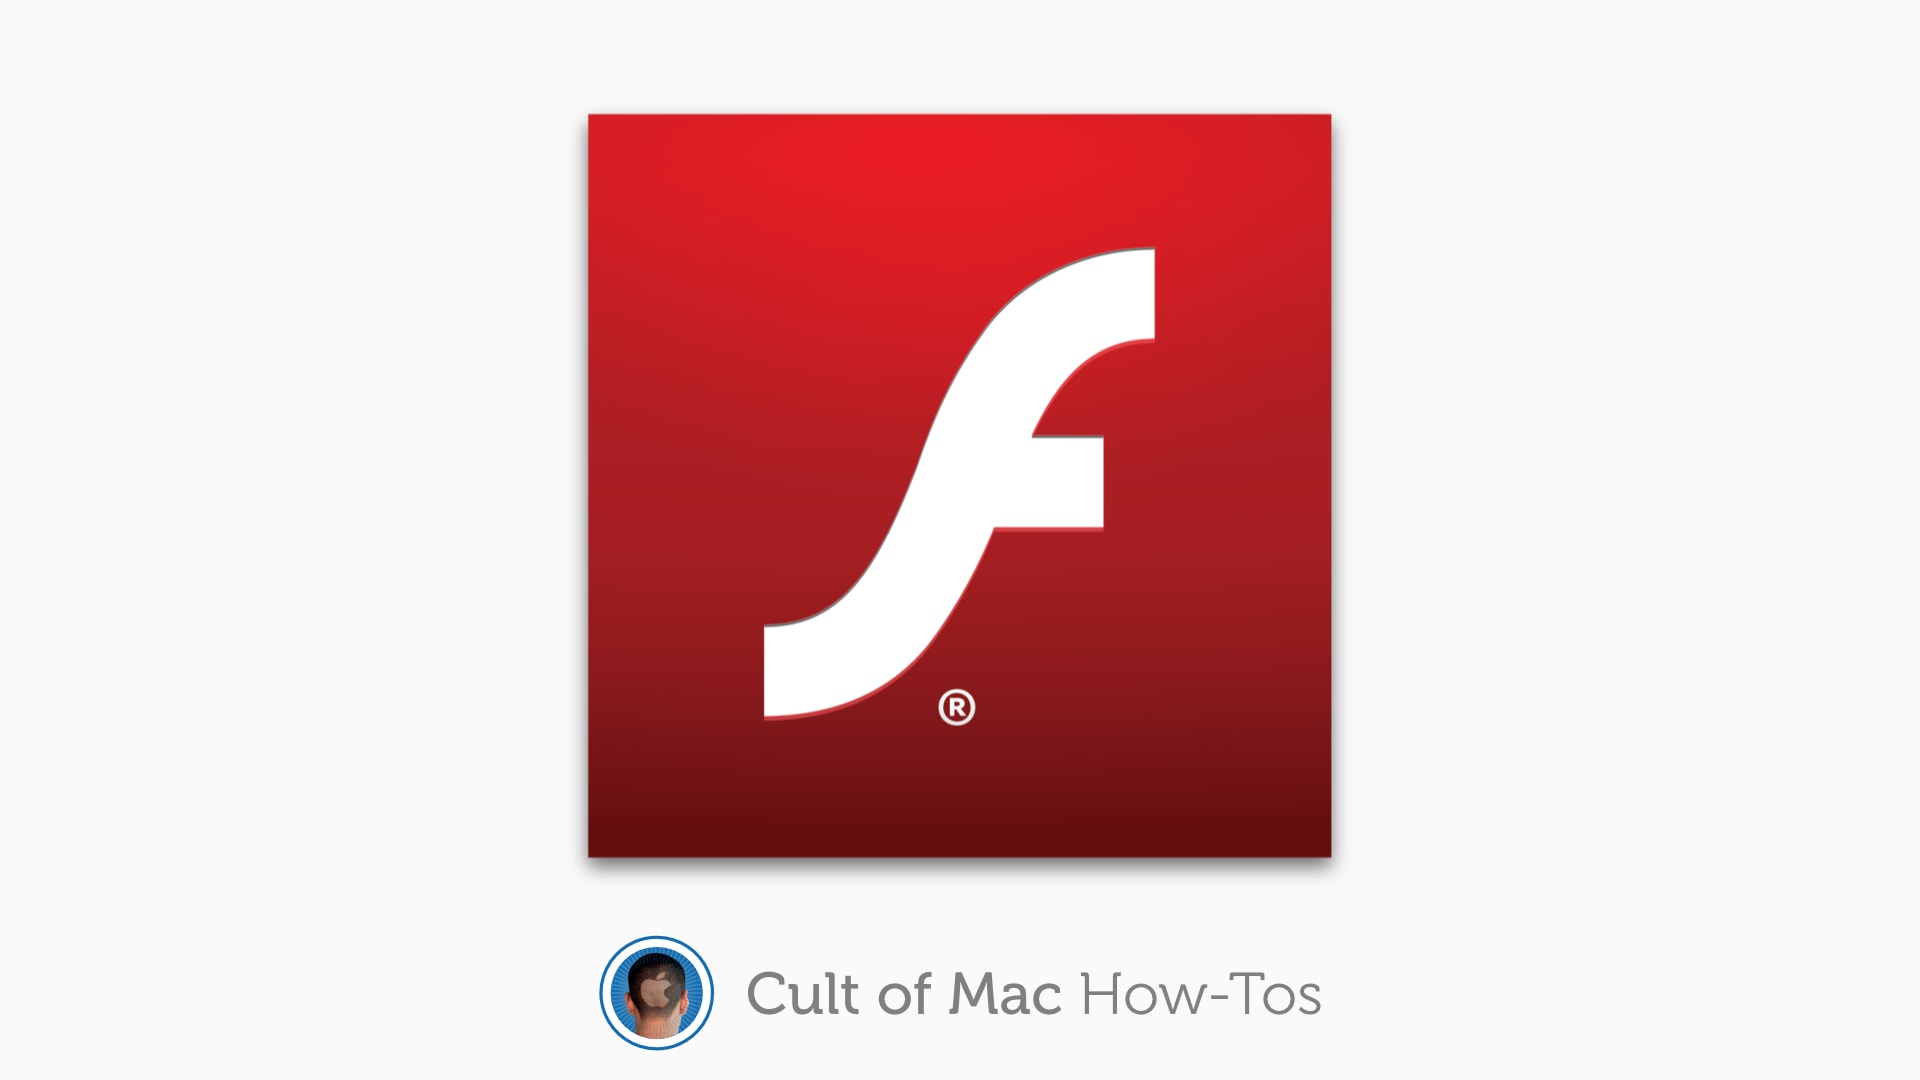 Adobe Flash Player is dead. Here's how to remove it from your Mac.